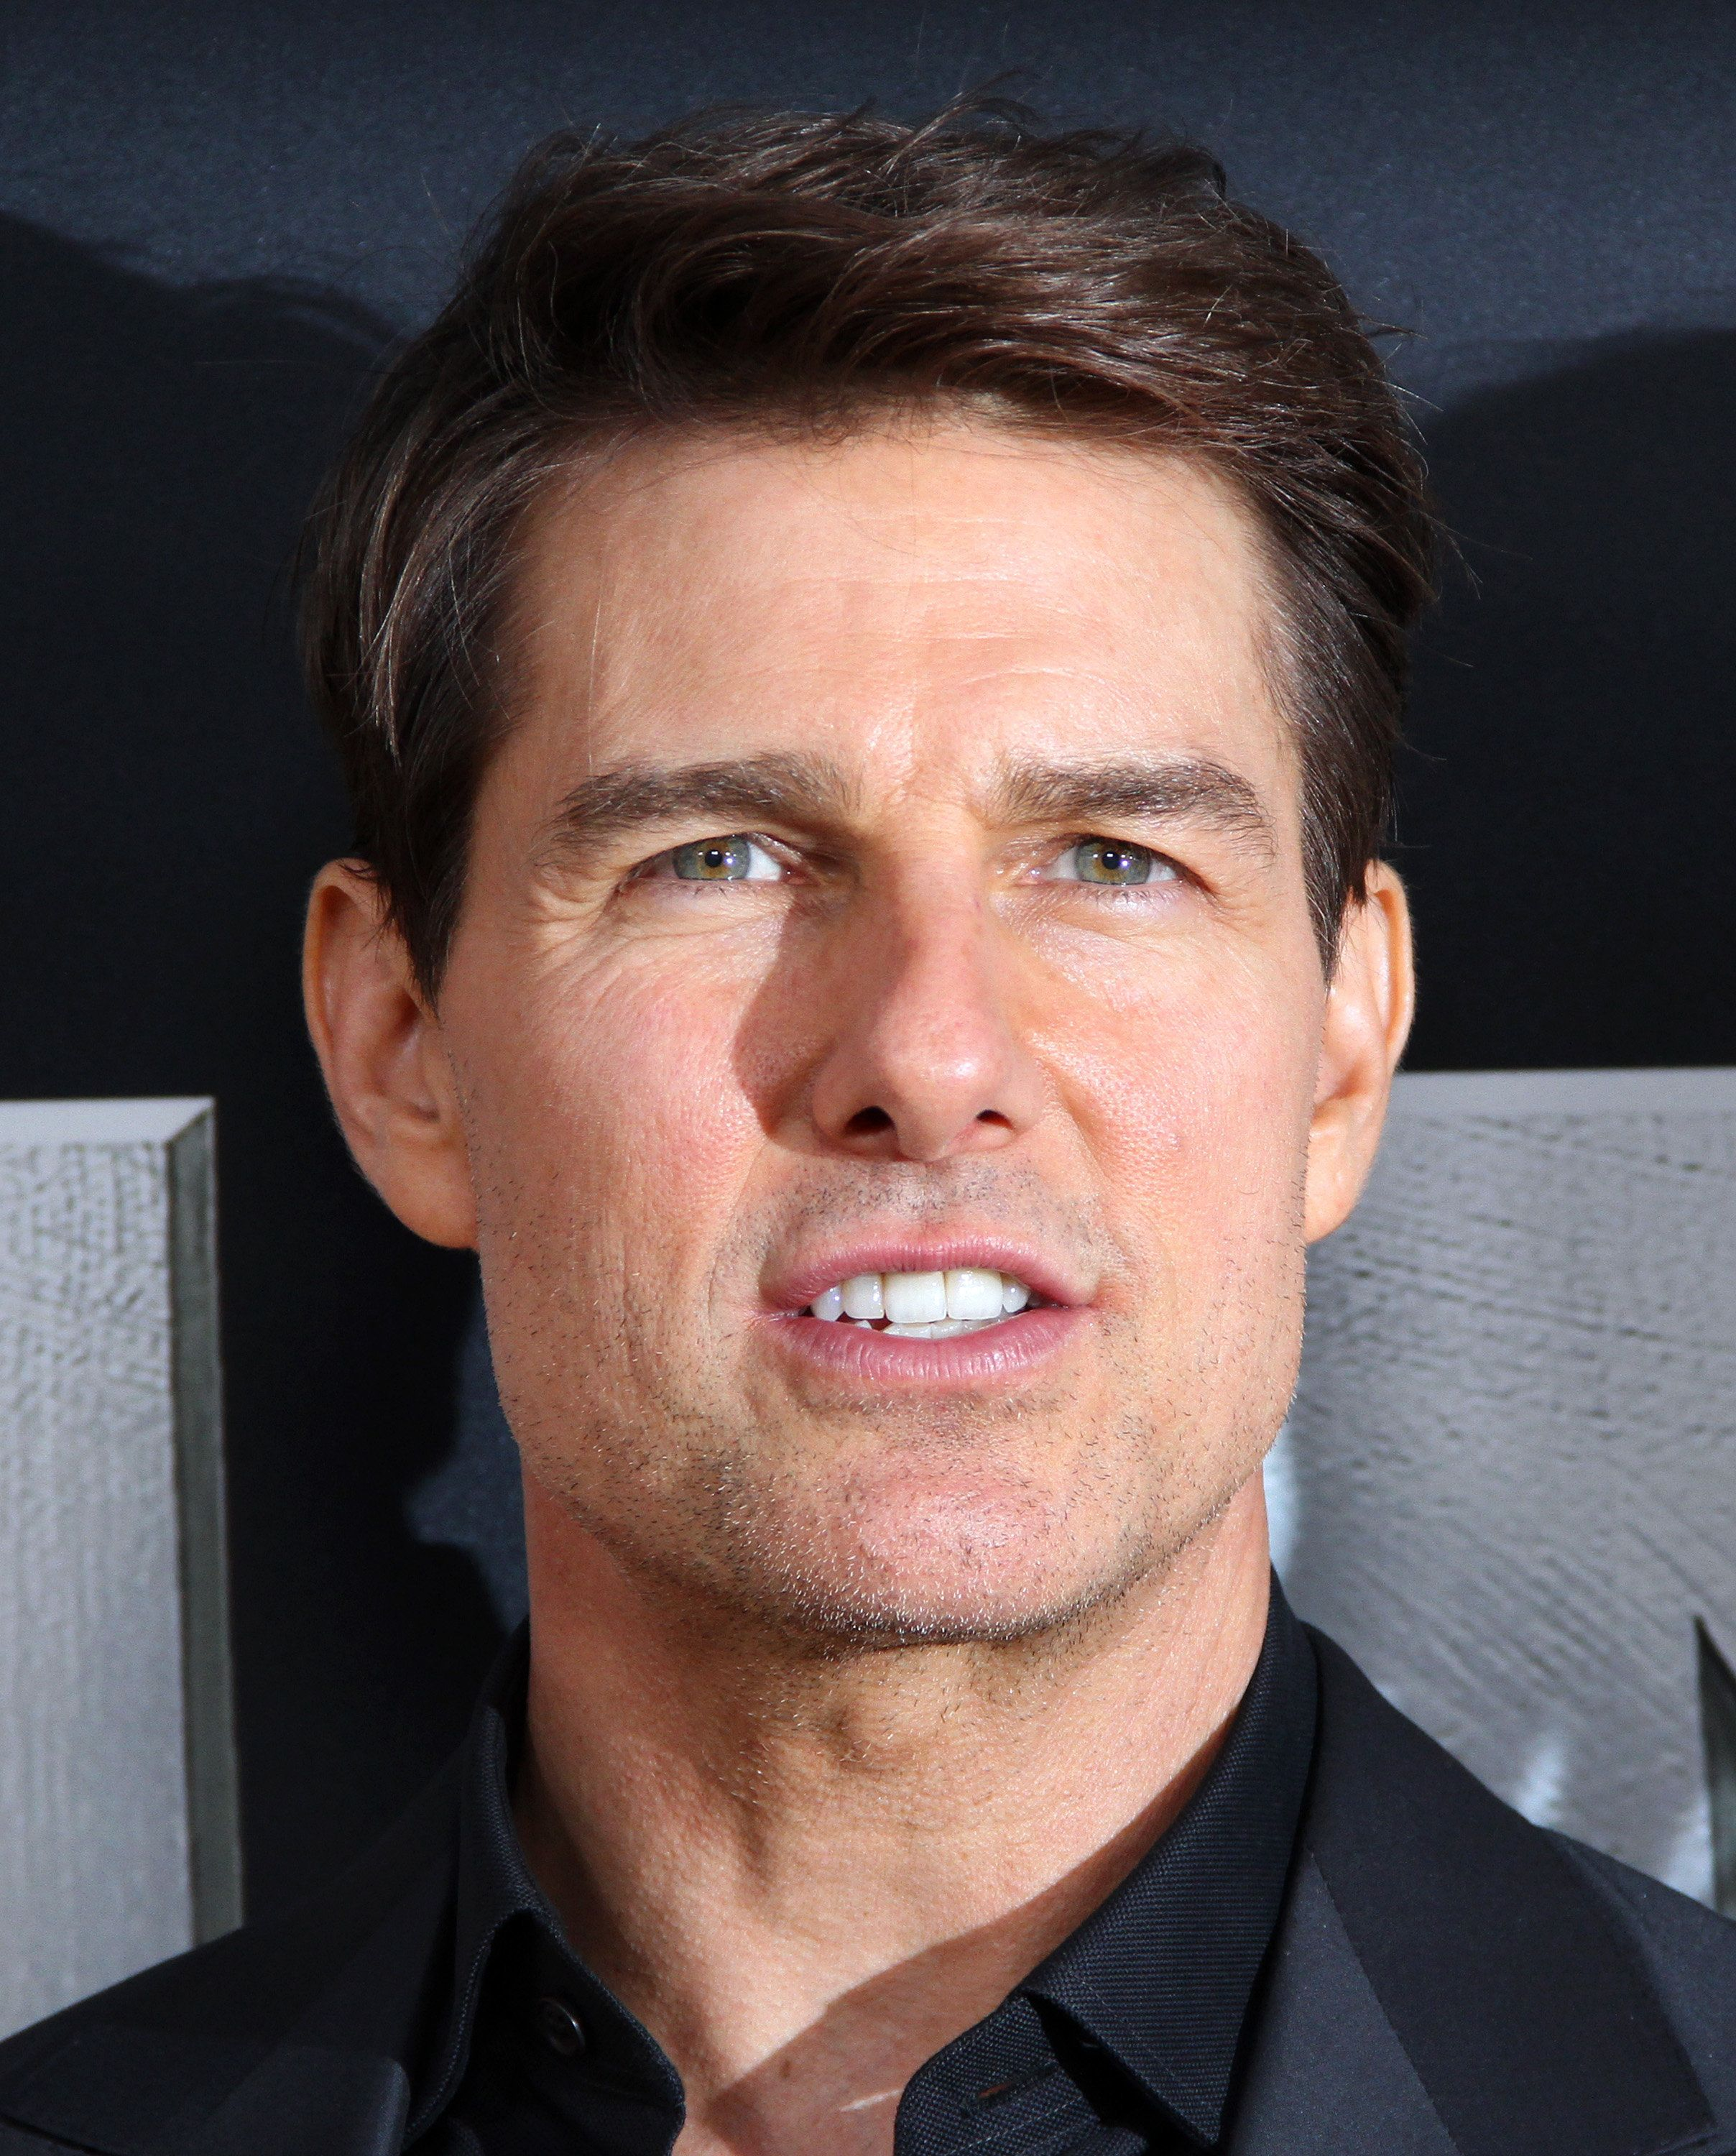 NEW YORK, NY - JUNE 06:  Tom Cruise attends 'The Mummy' Fan Event at AMC Loews Lincoln Square on June 6, 2017 in New York City.  (Photo by Donna Ward/WireImage)